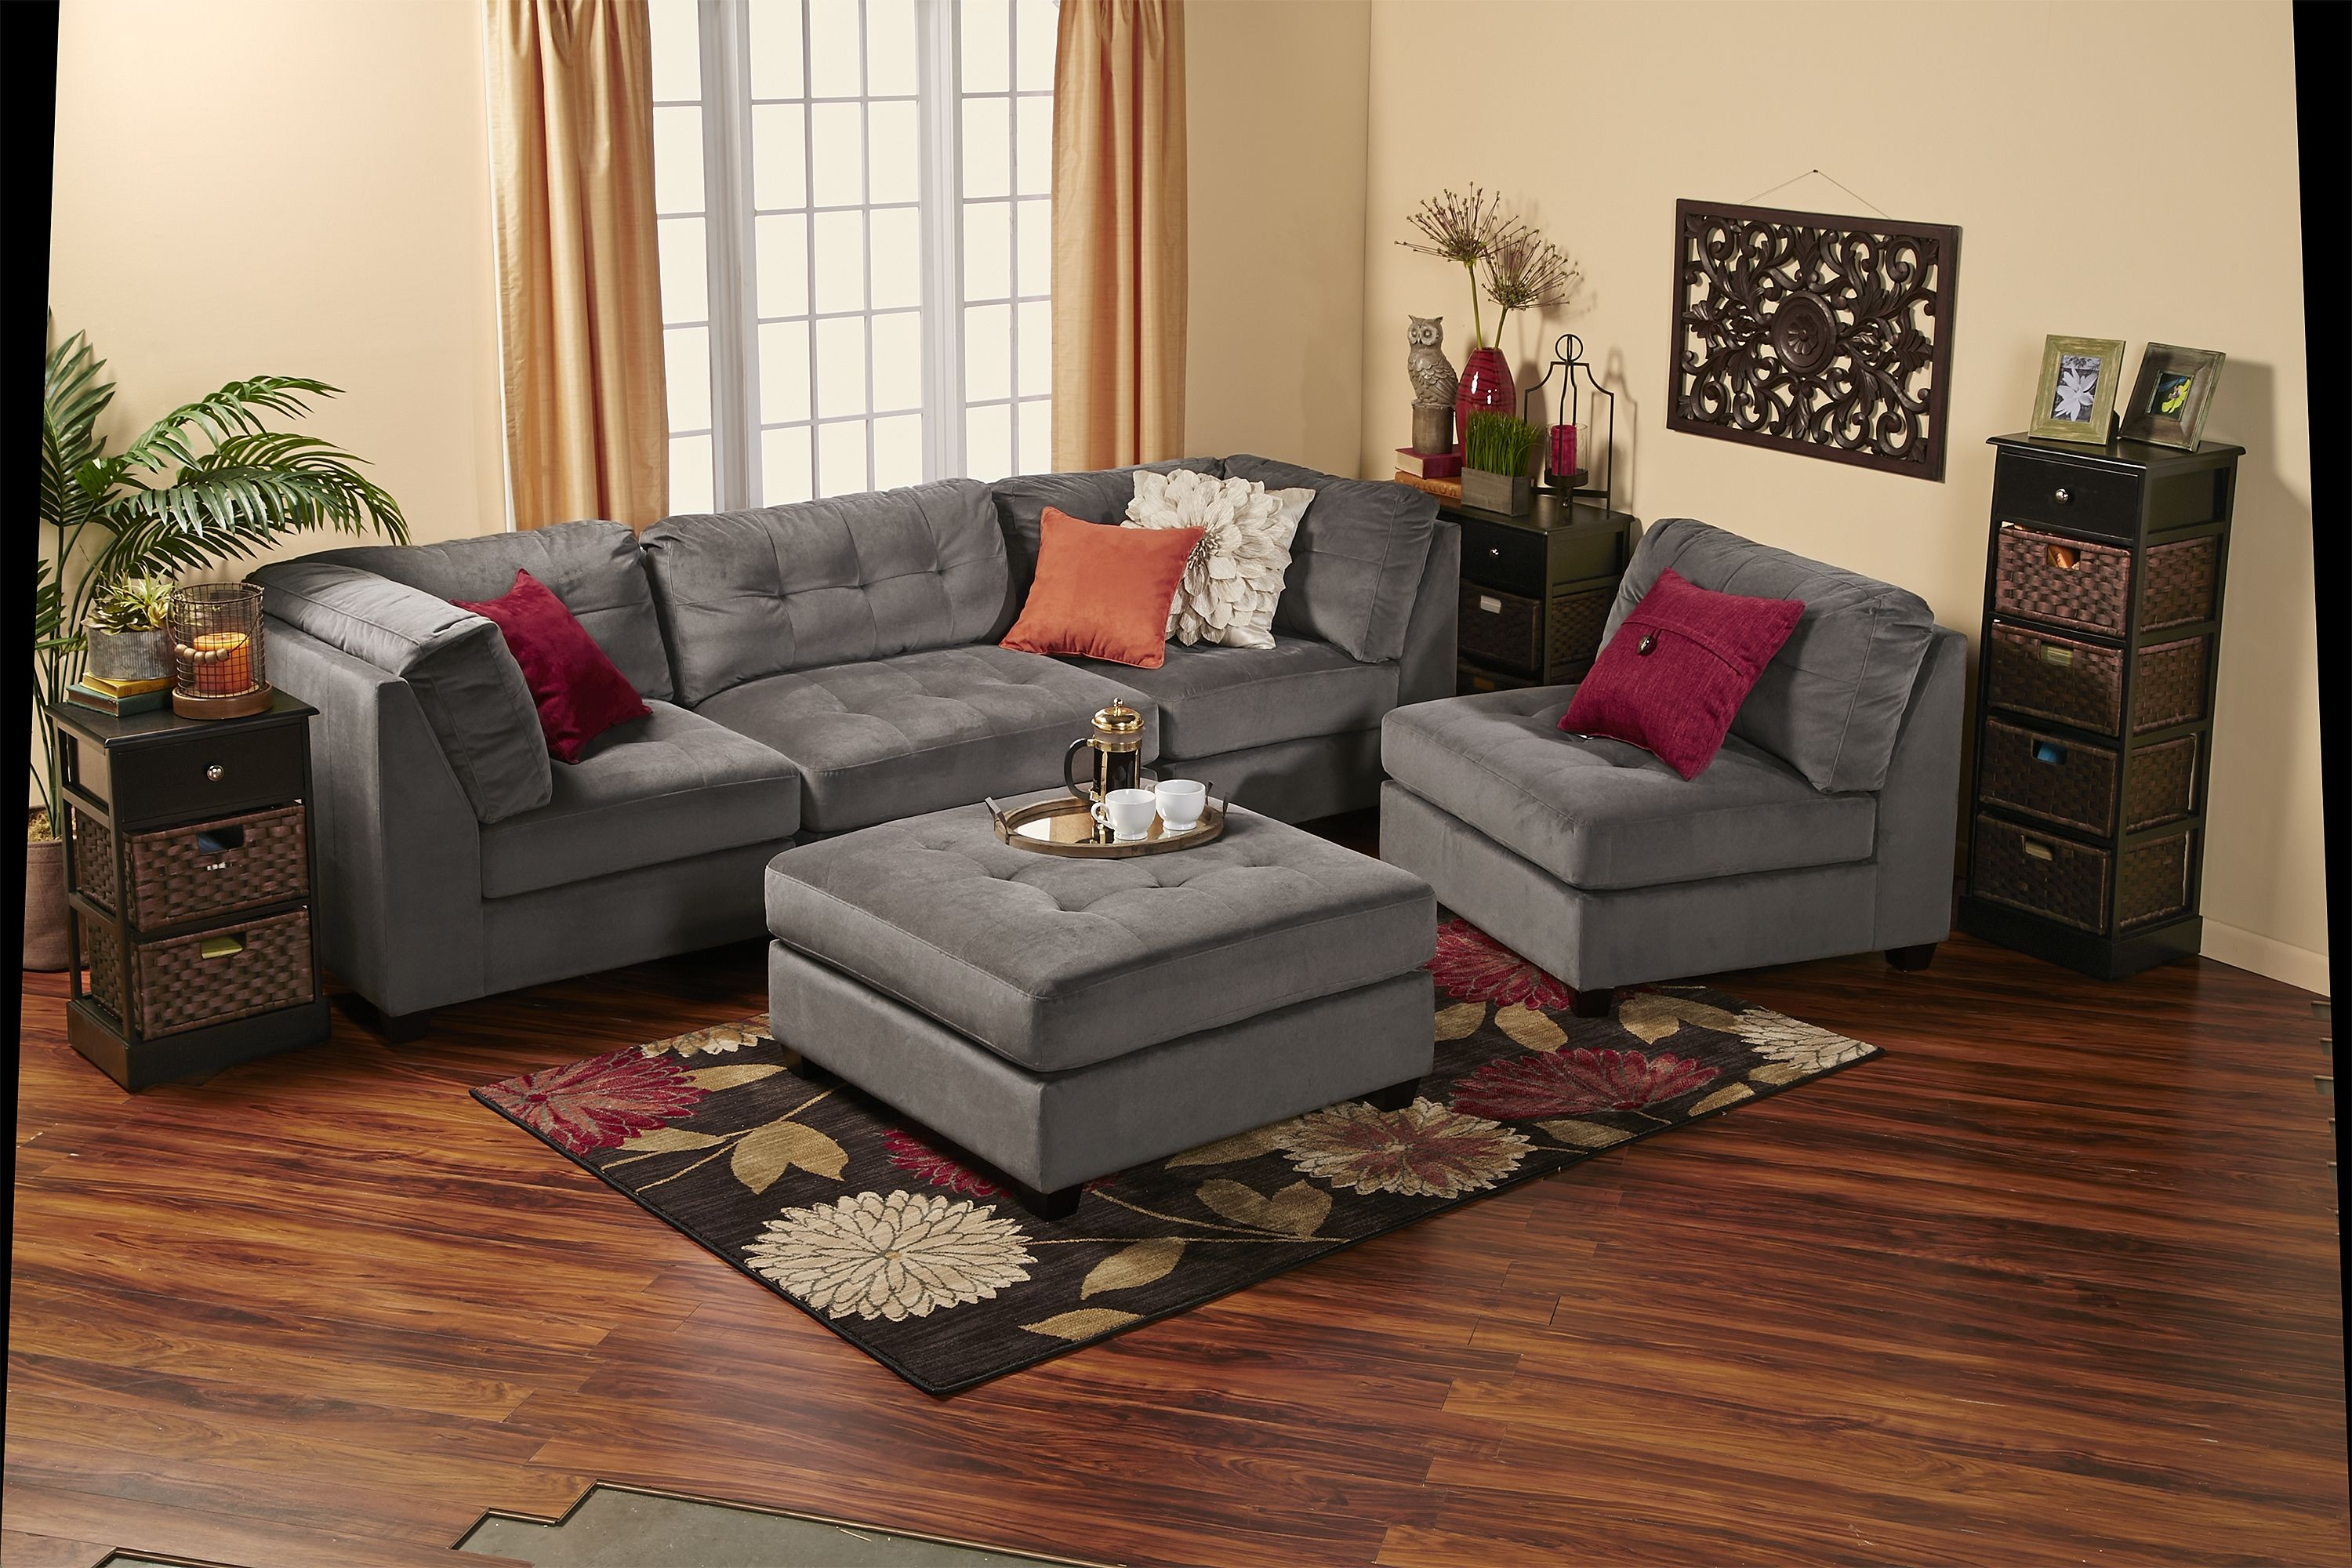 Fred Meyer Sectional Sofa | http://ml2r.com | Pinterest | Fred meyer ...